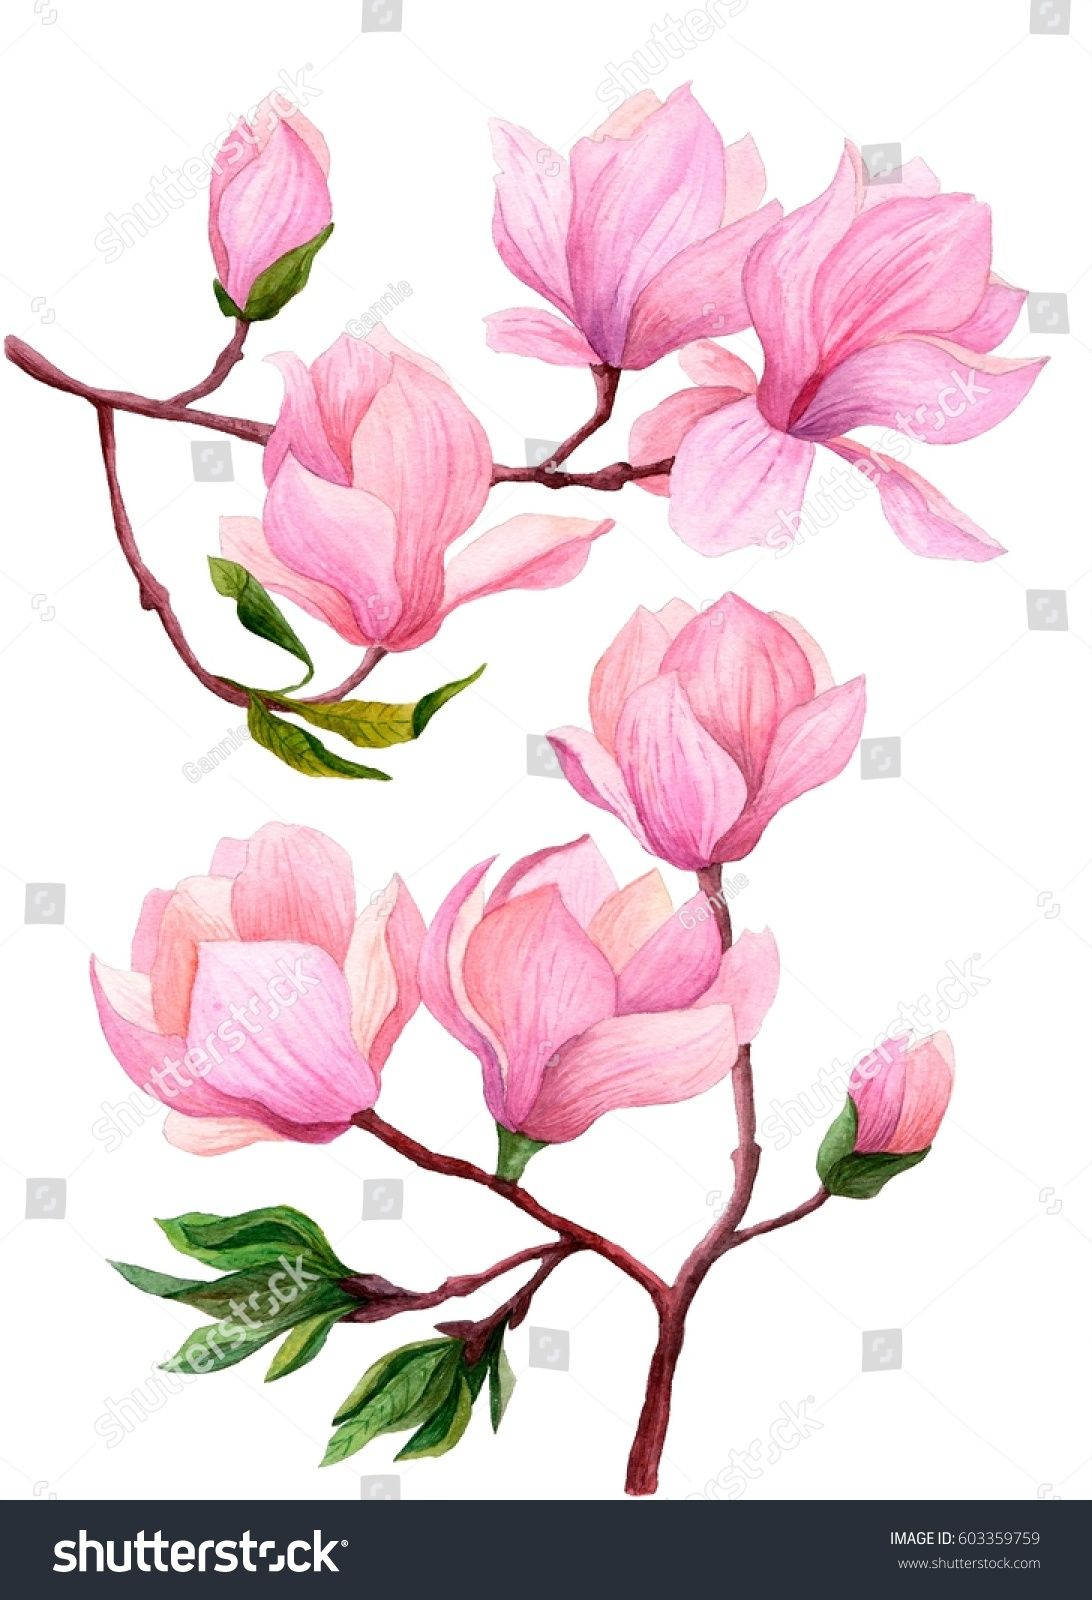 Watercolor Set Of Magnolia Branches Hand Drawn Botanical Illustration Pink Magnolia In Bloom Isolat Cherry Blossom Art Cherry Blossom Drawing Magnolia Branch